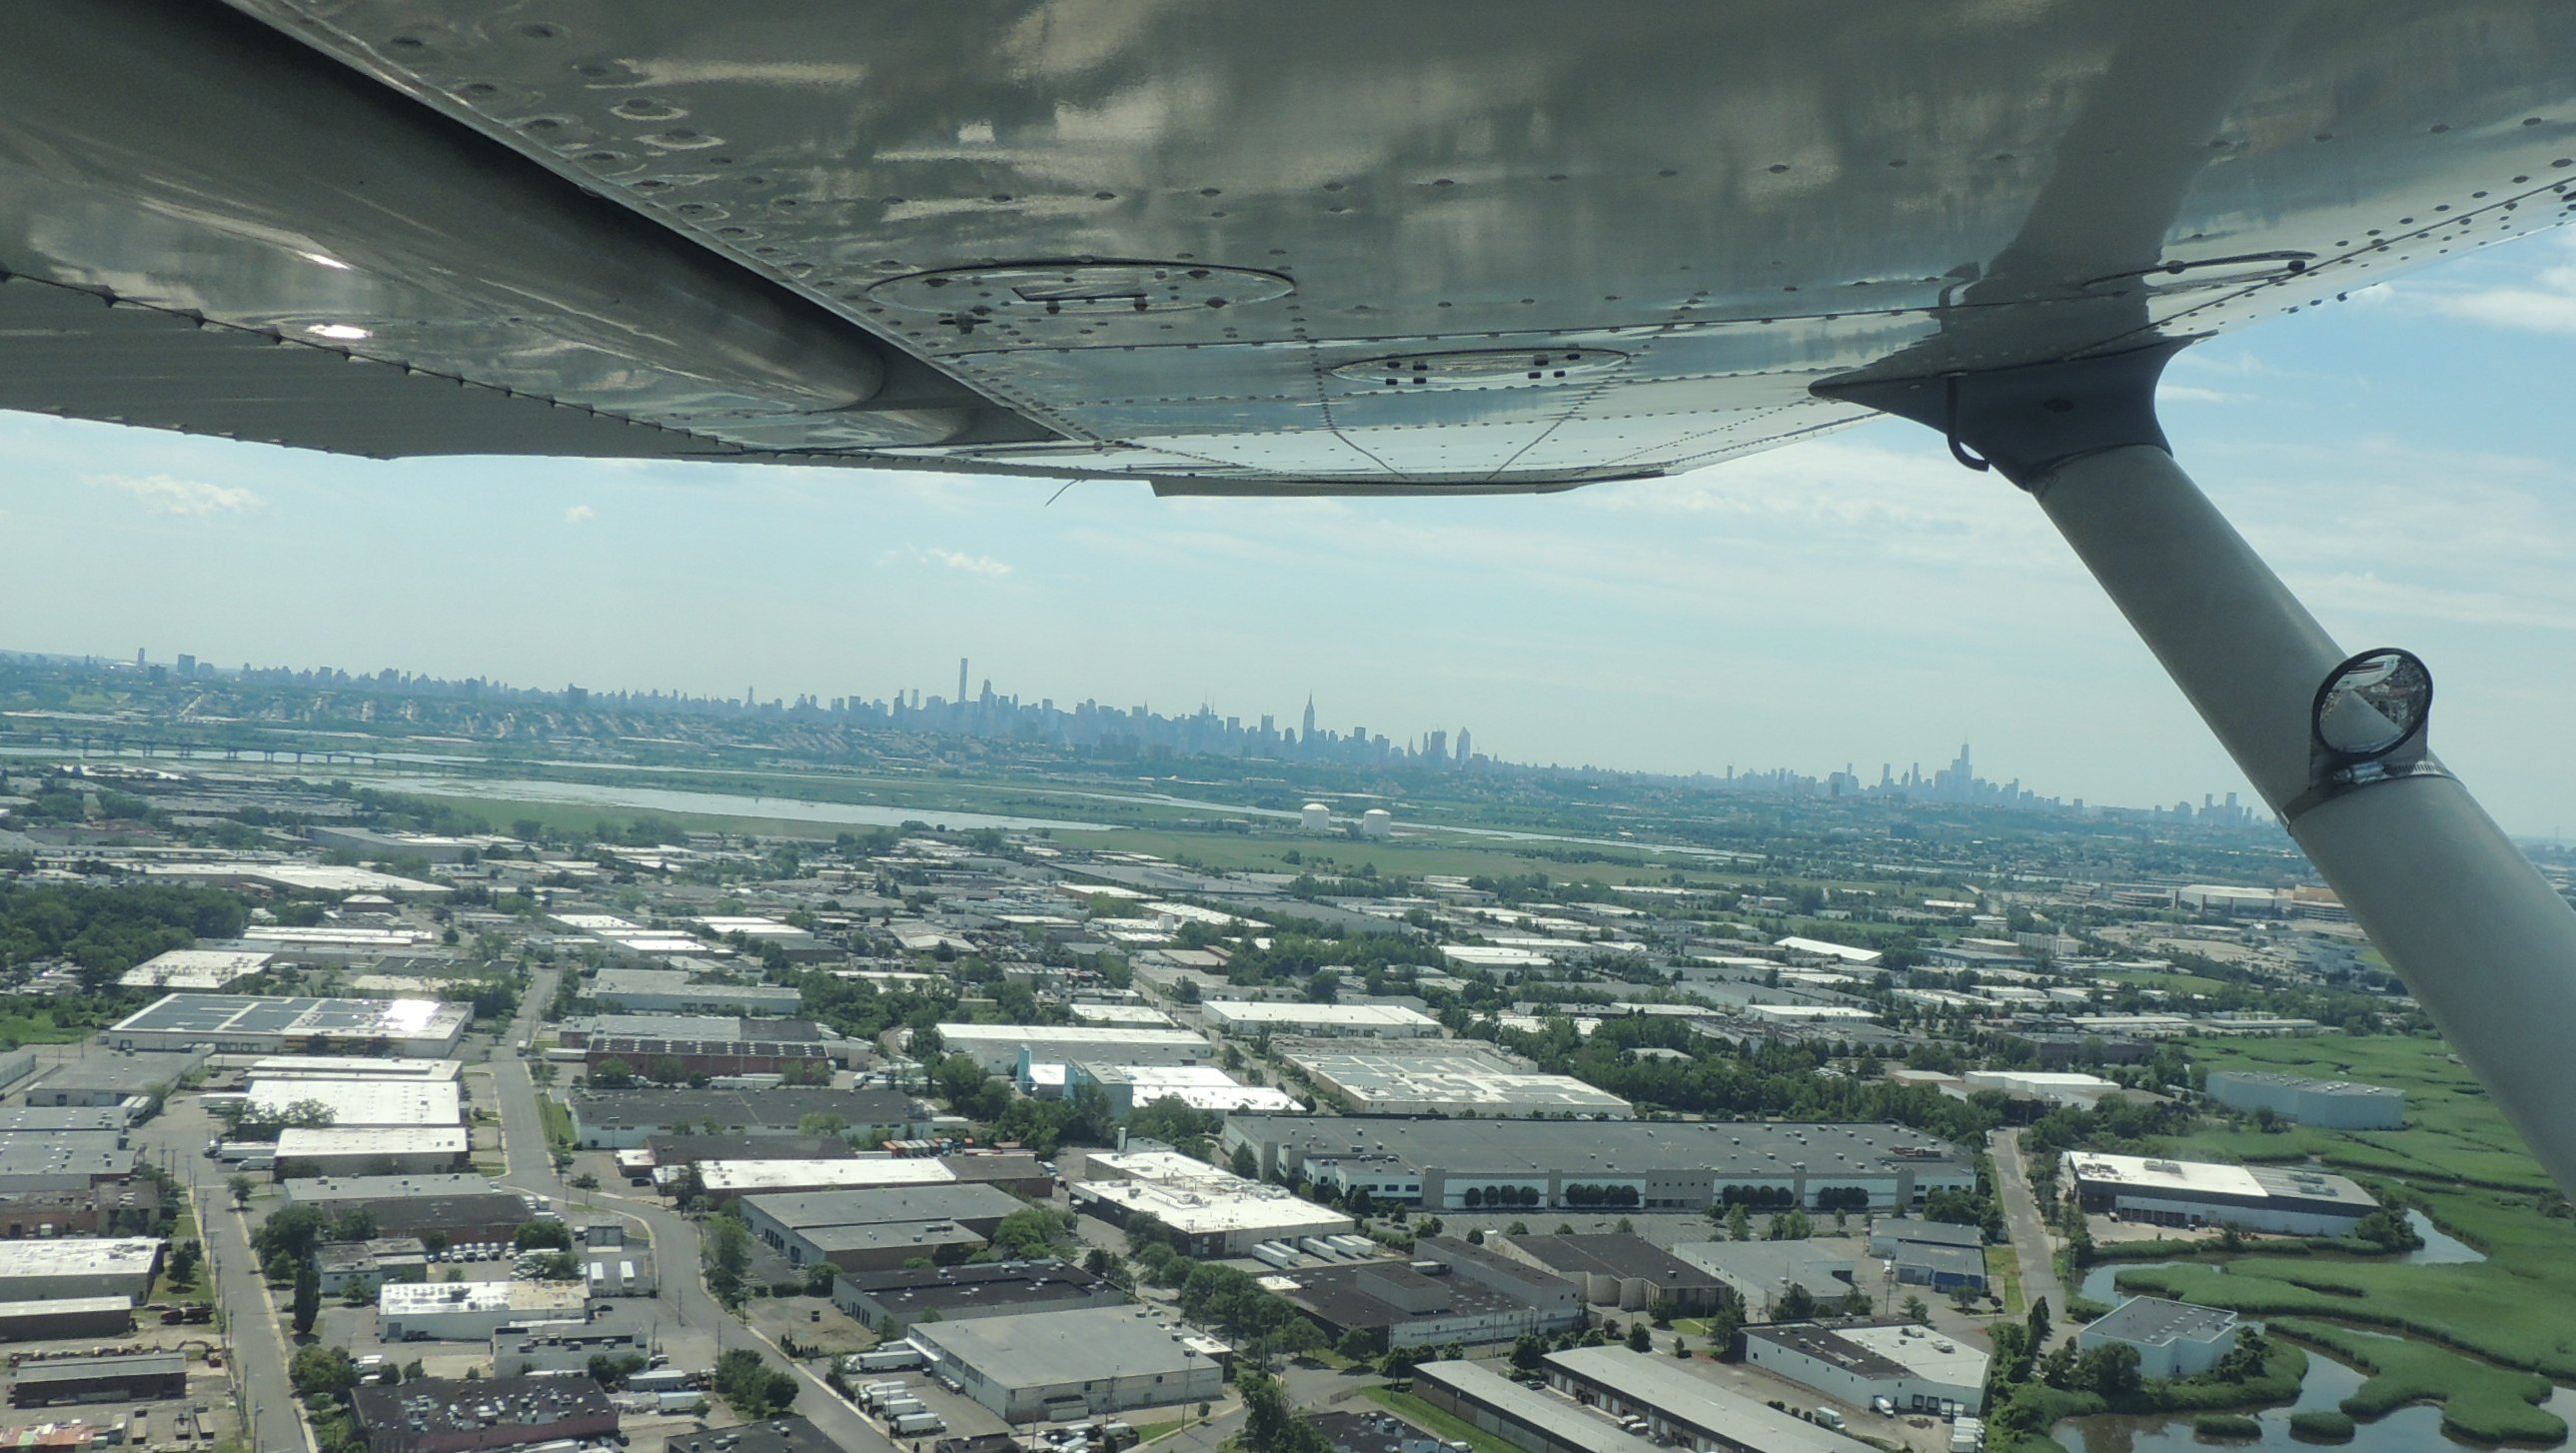 Departing Teterboro looking east to NYC